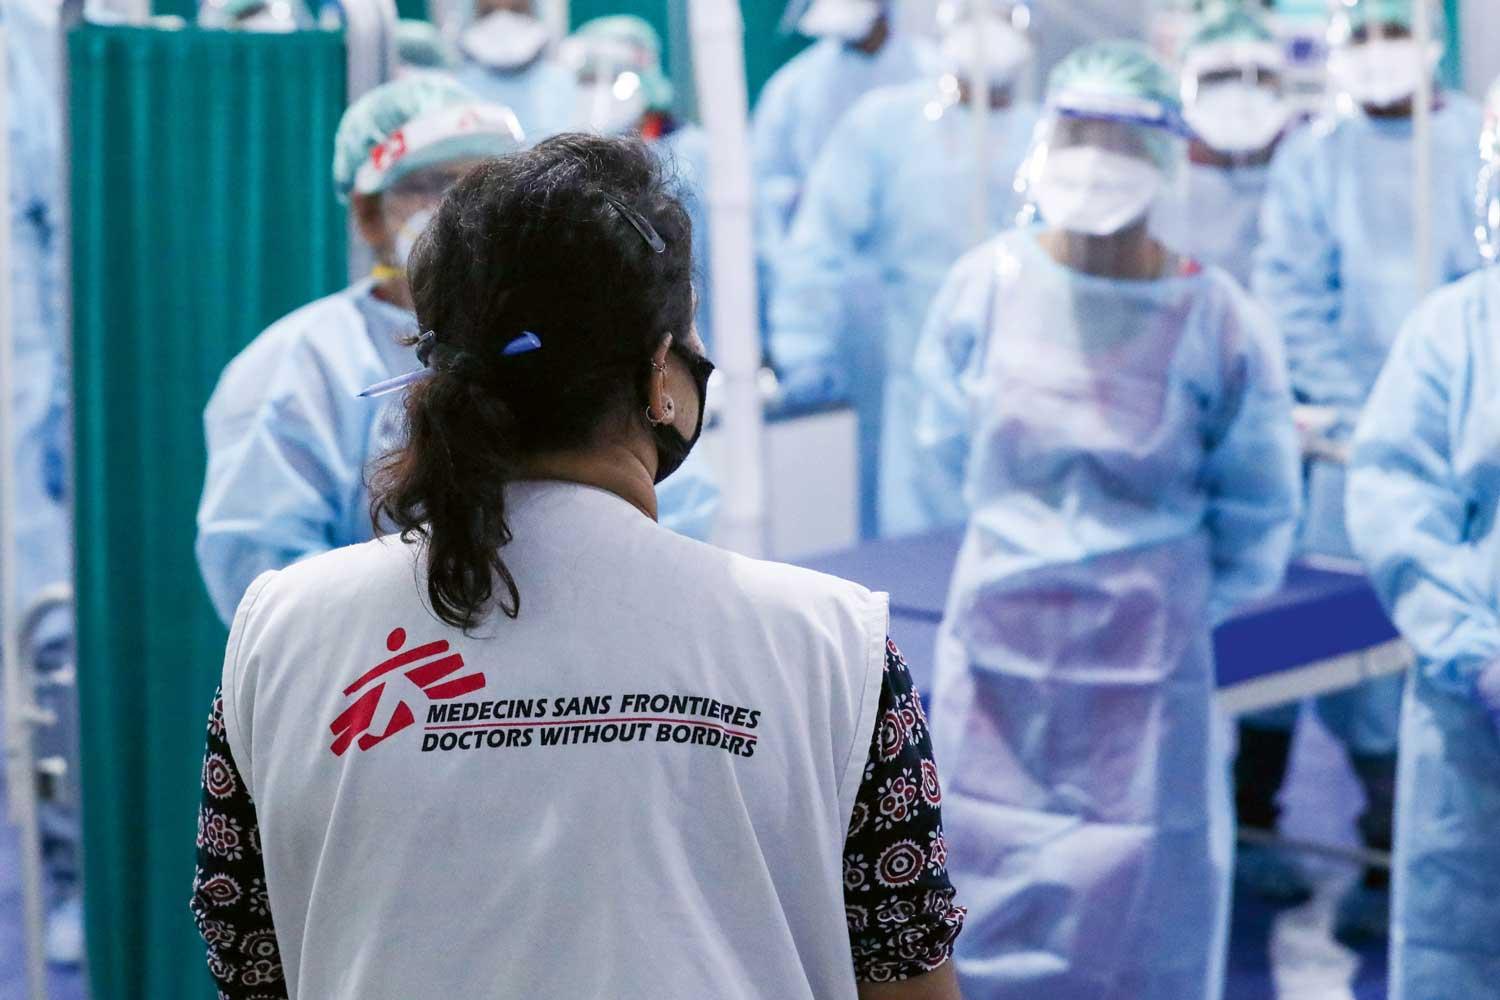 This is the tenth year of cooperation between Doctors Without Borders and Nomos.